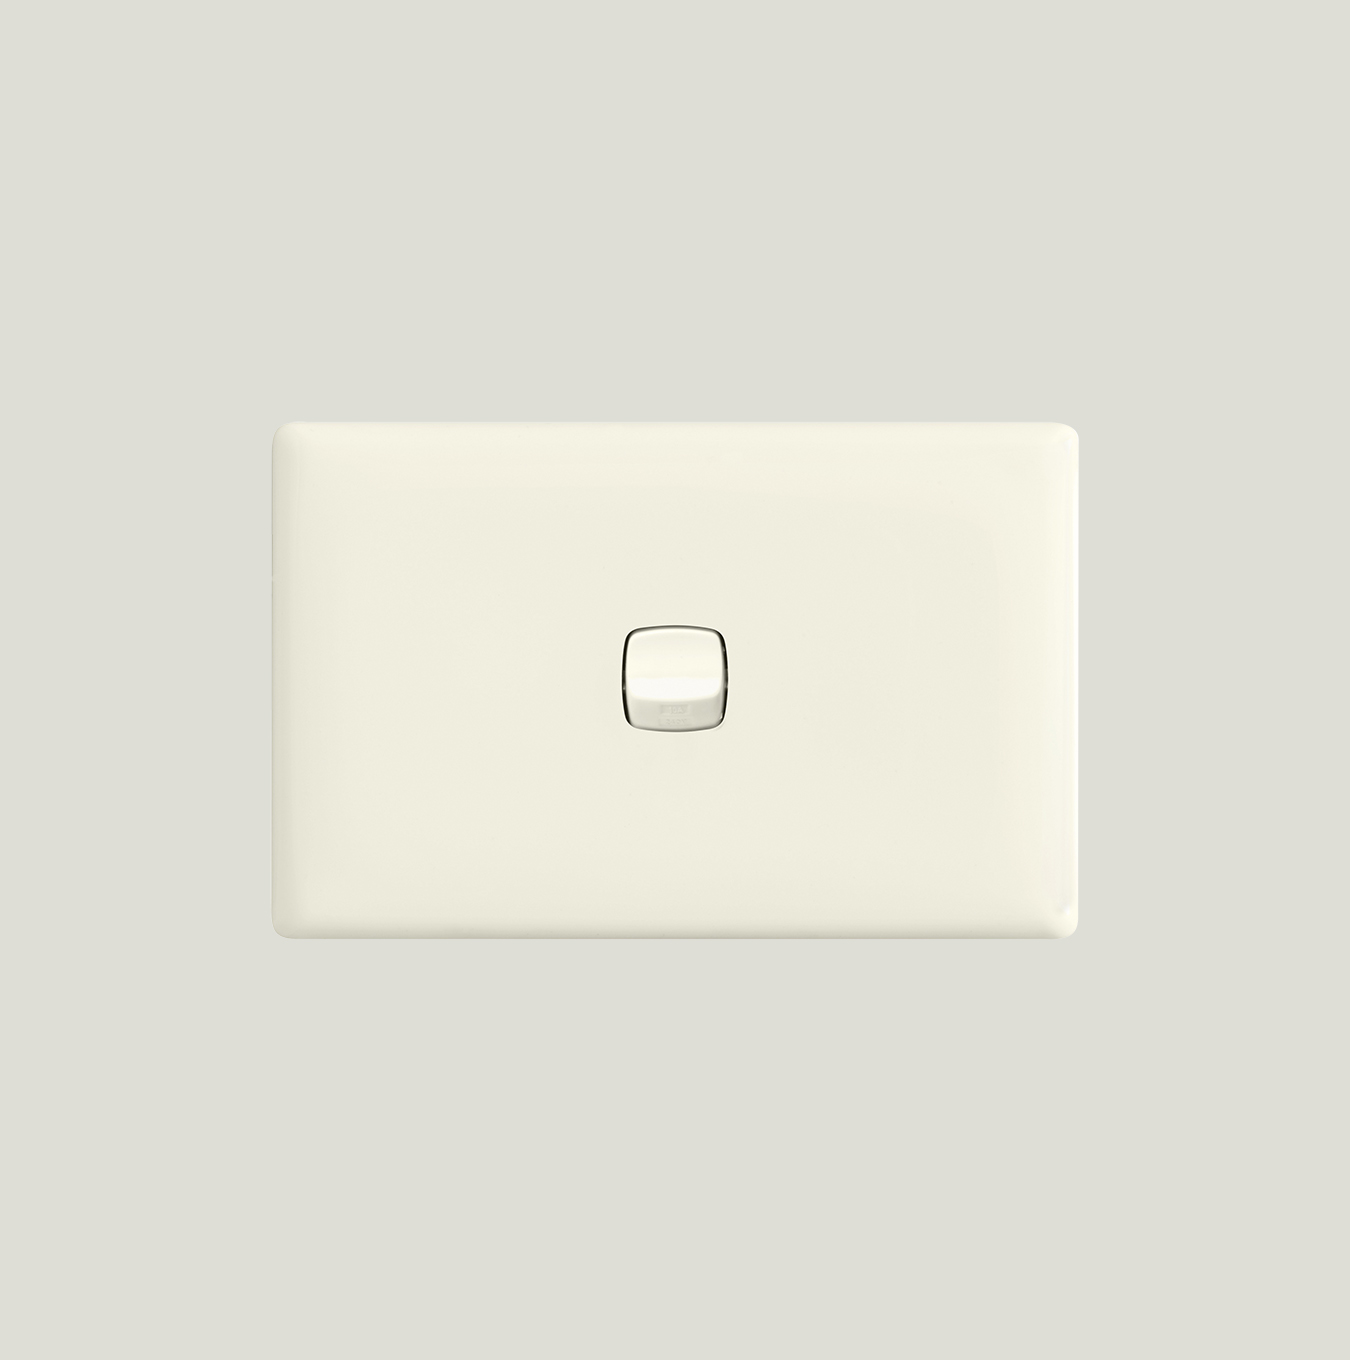 Linea Light Switches Sockets Amp Power Points Hpm Nz